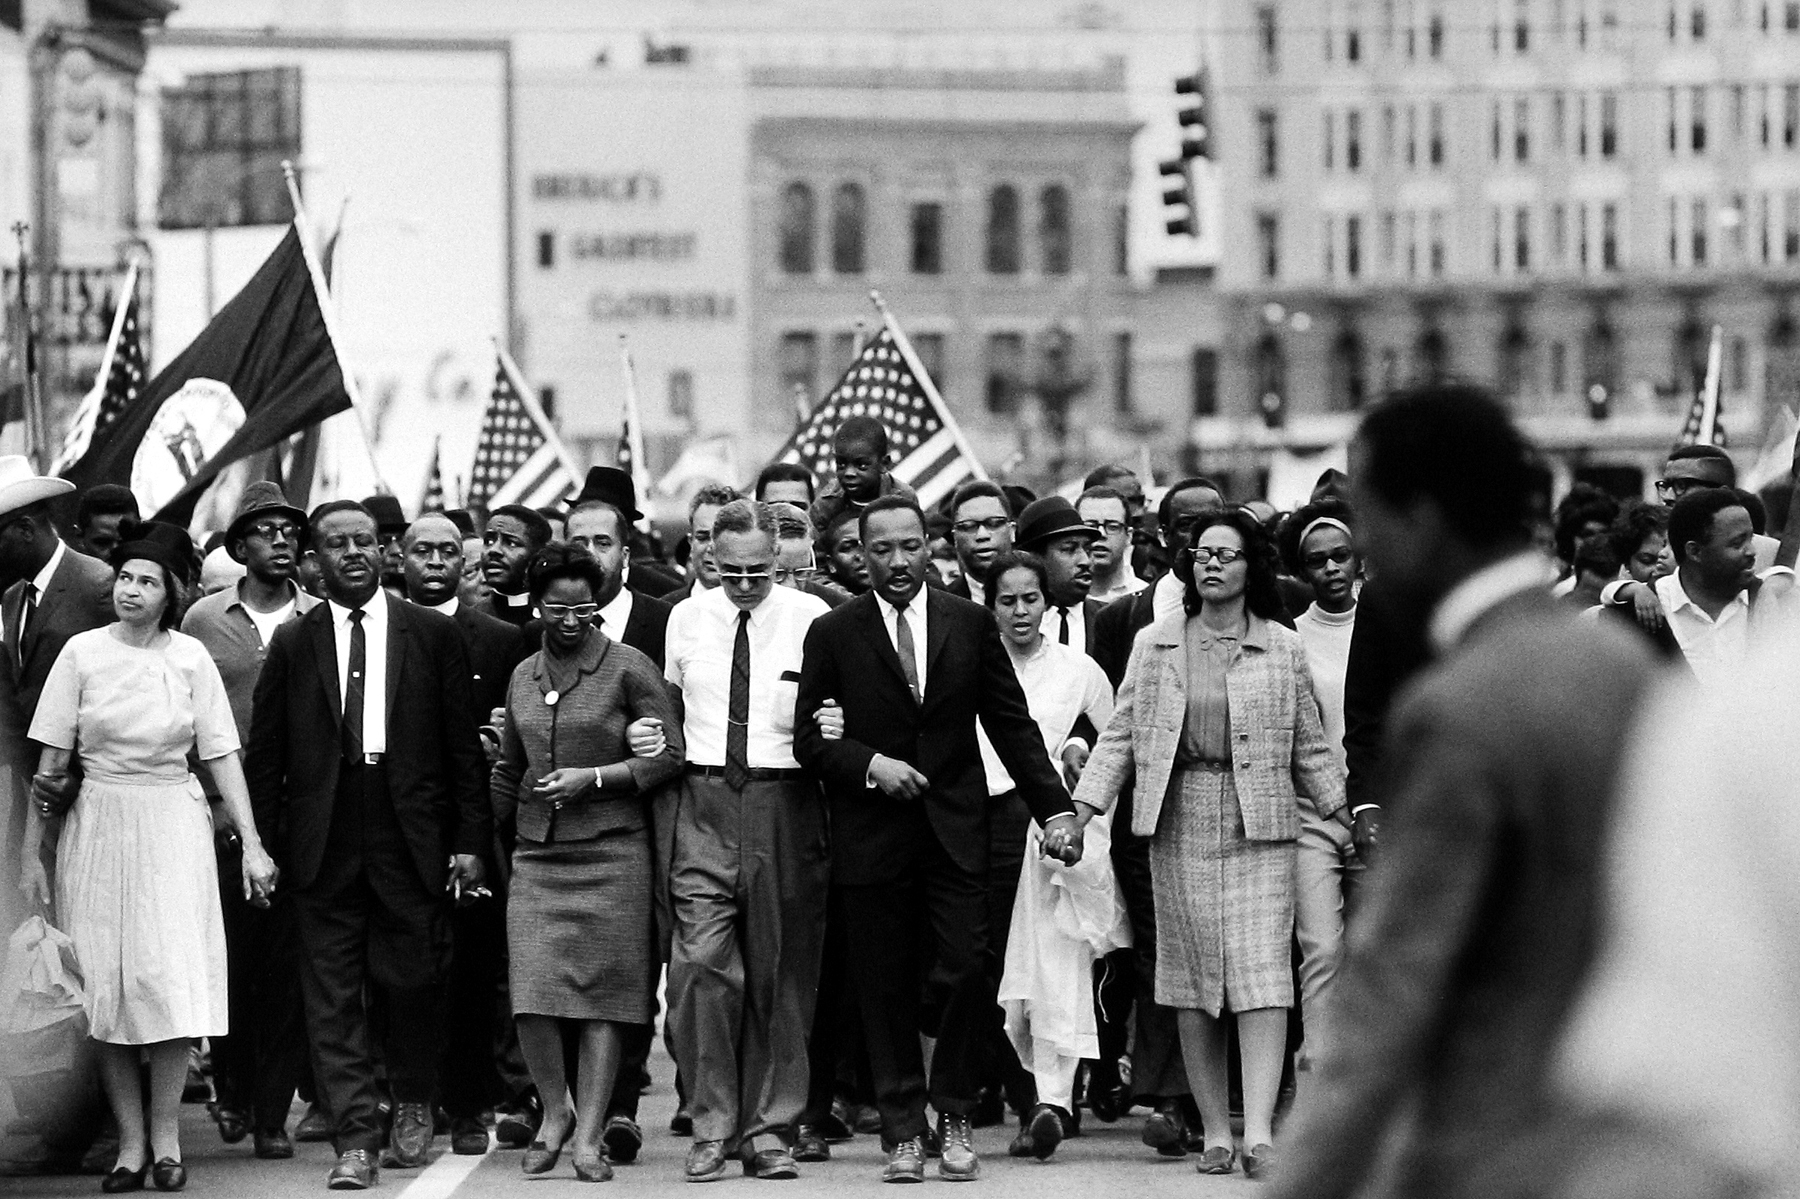 an in depth analysis of the american civil rights movement in the 1950s and 1960s It follows the progression of the civil rights movement, beginning from segregation laws, early attempts at desegregation, the montgomery bus boycott, the achievments of martin luther king, and the development of radical methods pioneered by malcom x.